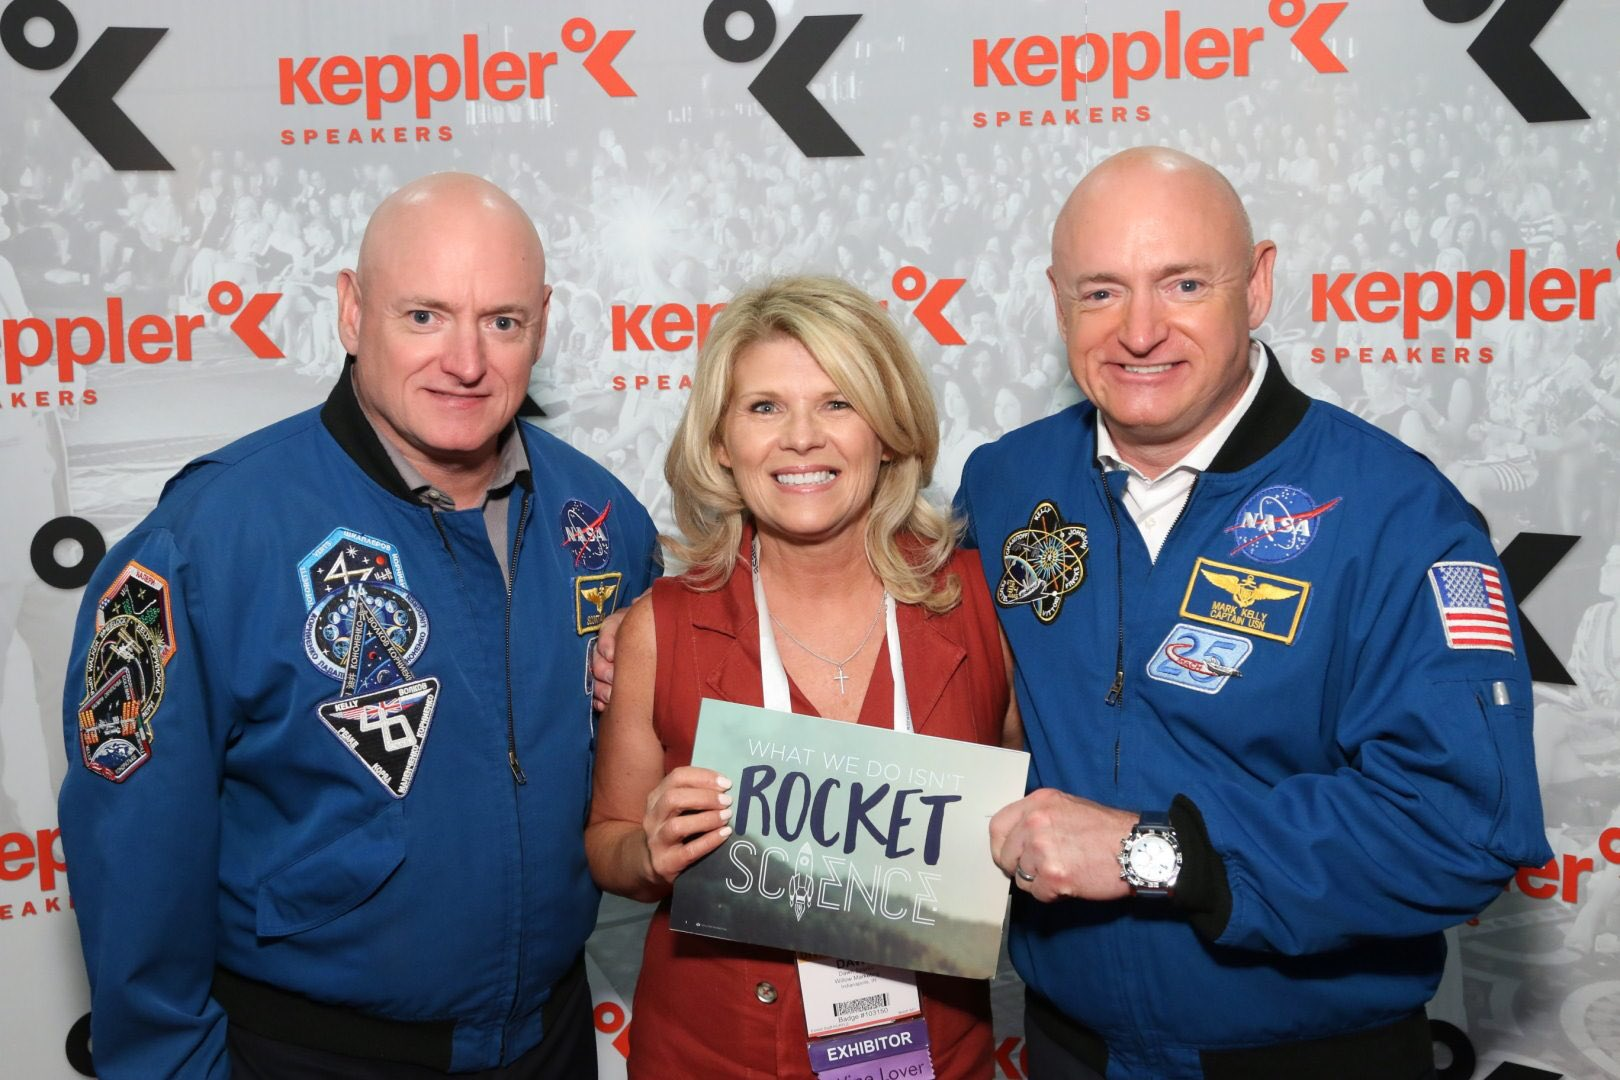 Great to rub elbows with real Rocketmen, Mark and Scott Kelly @ASAE16. #Welike2RocketatASAE https://t.co/bMvYahZozi